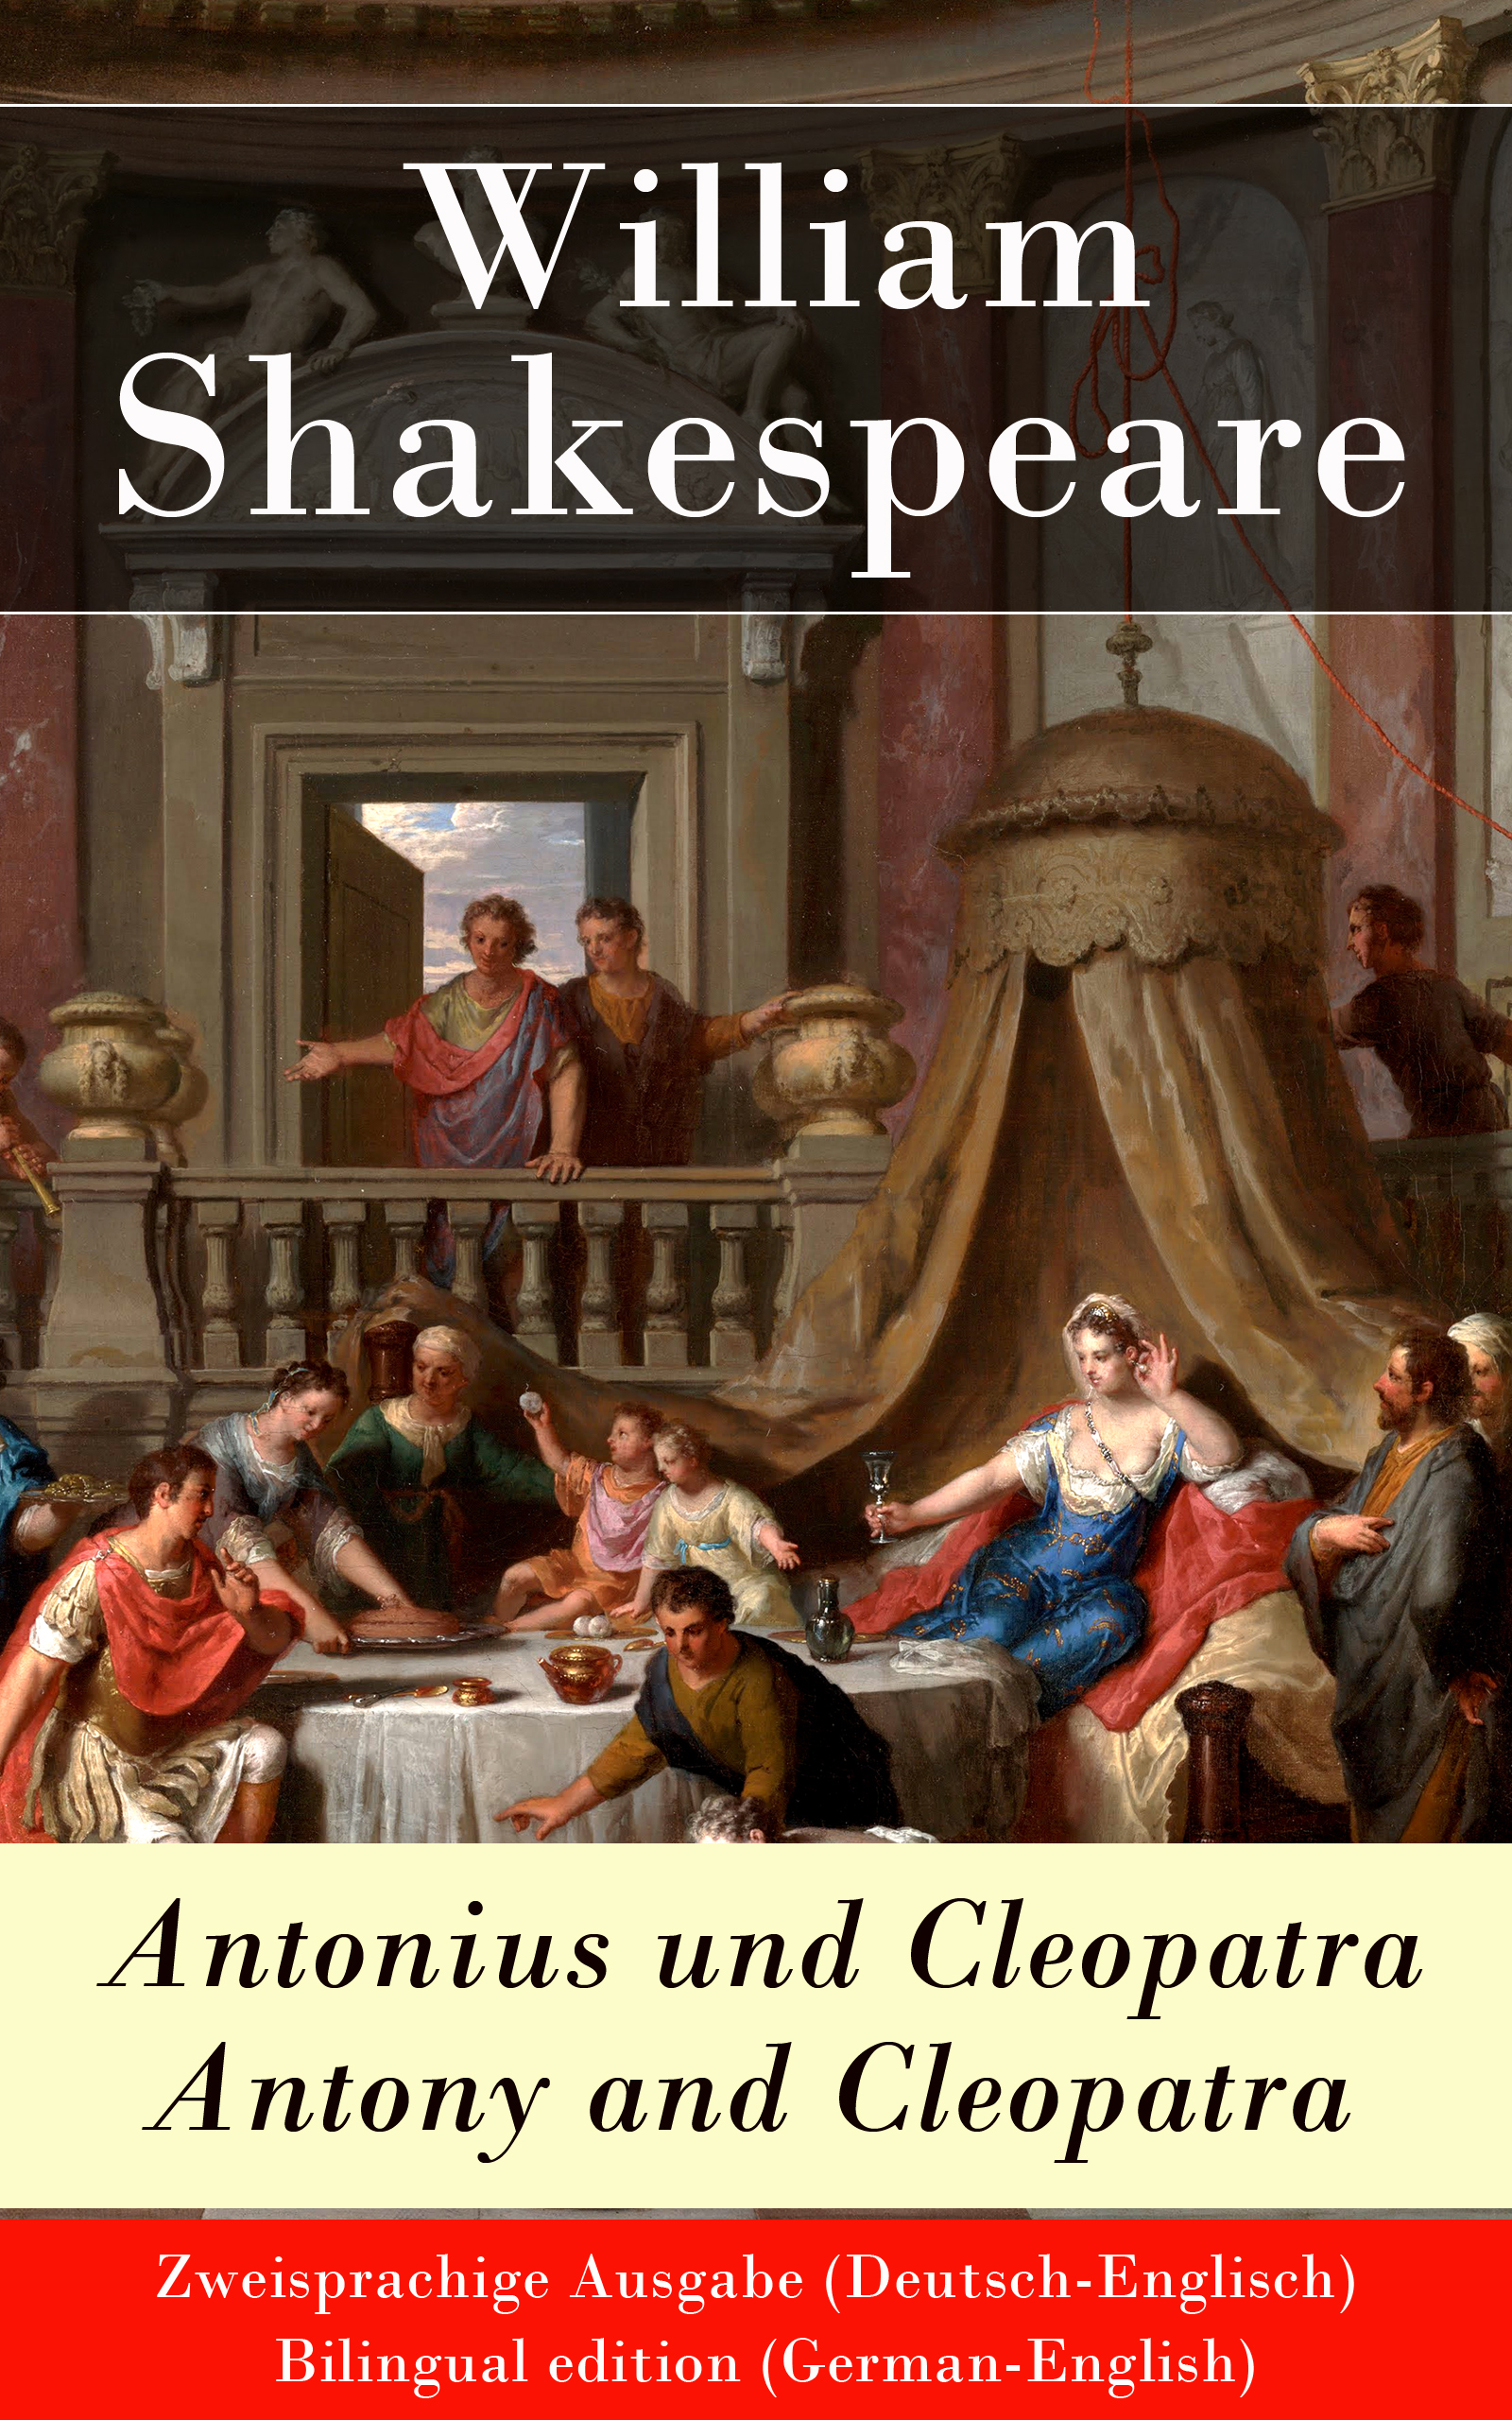 antonius und cleopatra antony and cleopatra zweisprachige ausgabe deutsch englisch bilingual edition german english